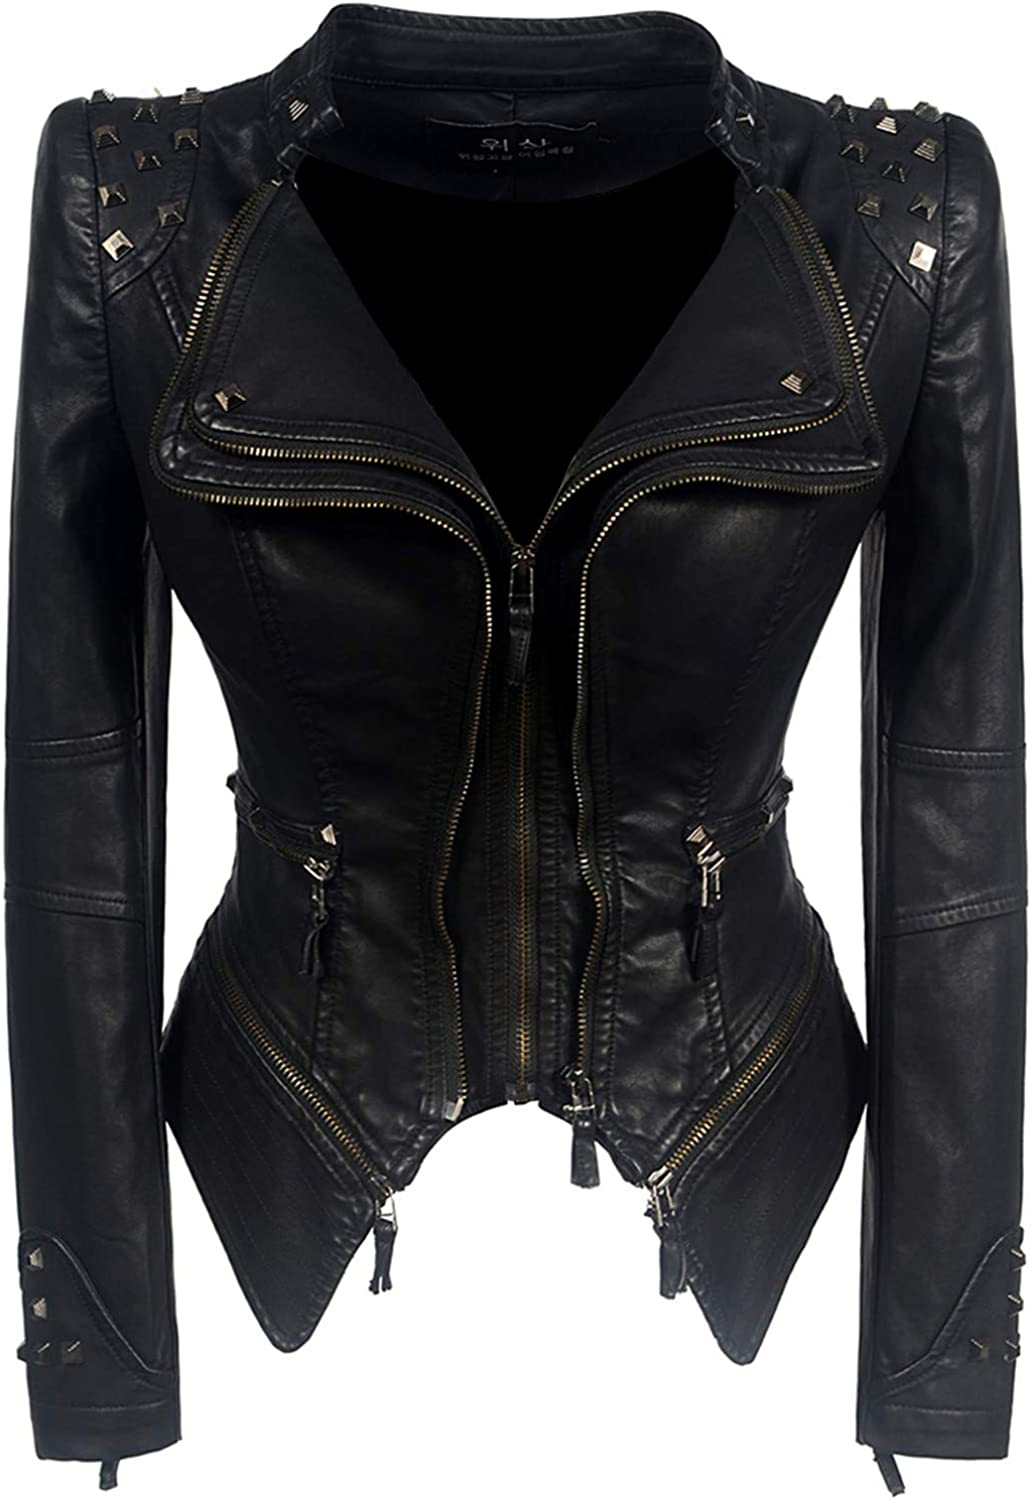 Cheryl Bull Trendy Black Motorcycle Jacket Outerwear Faux Leather PU Jacket Faux Leather Coats